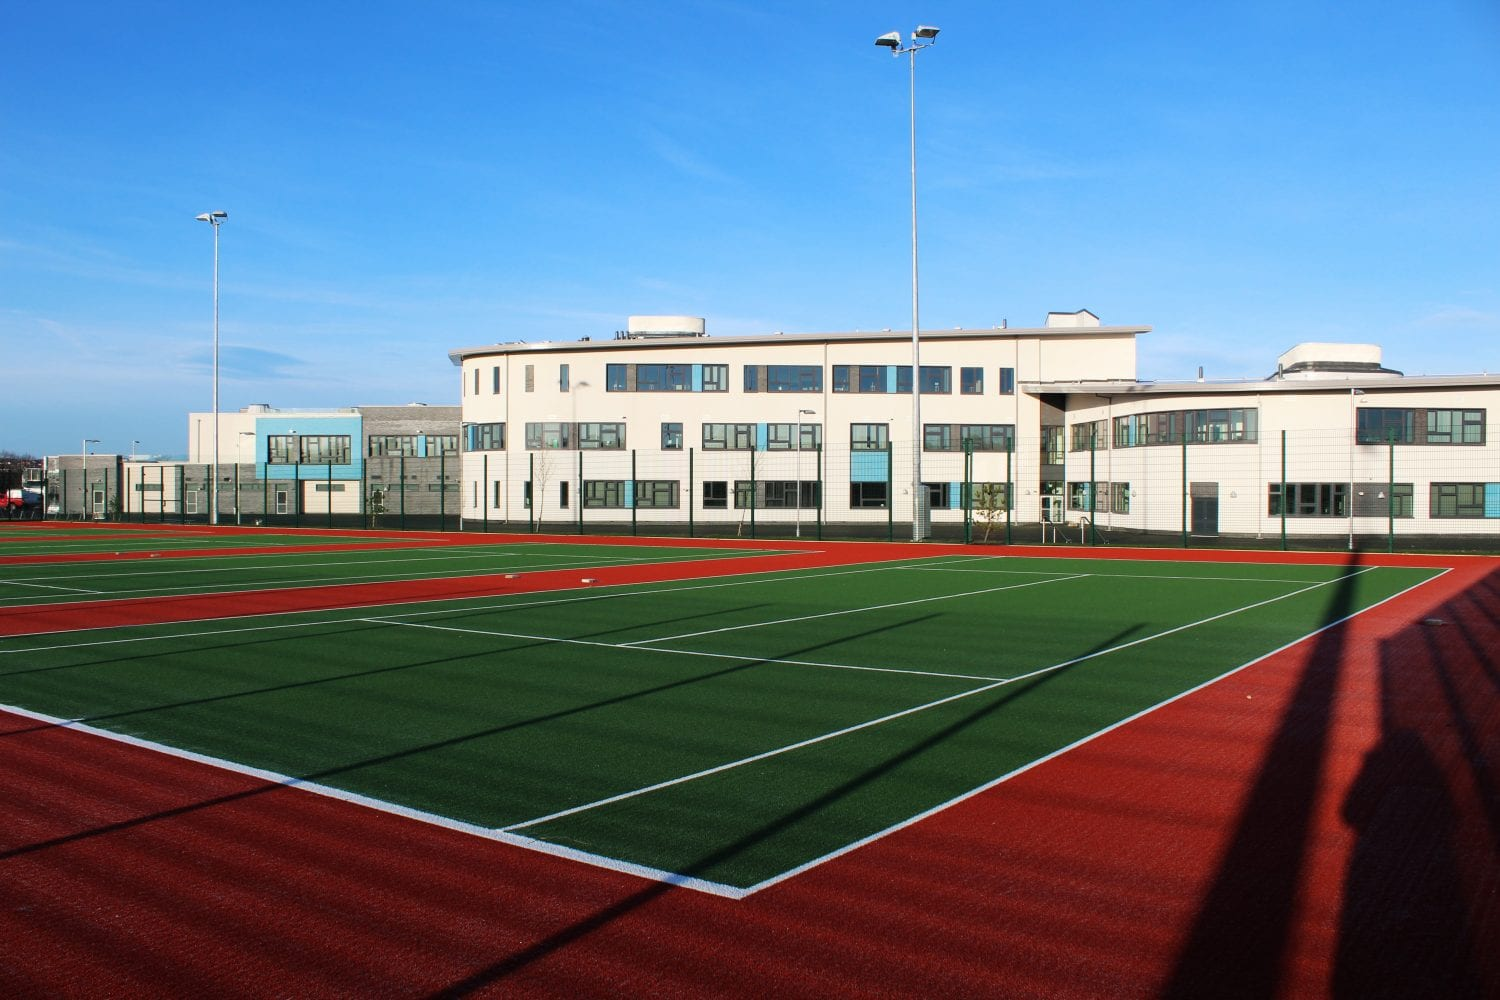 Foyle College New Building